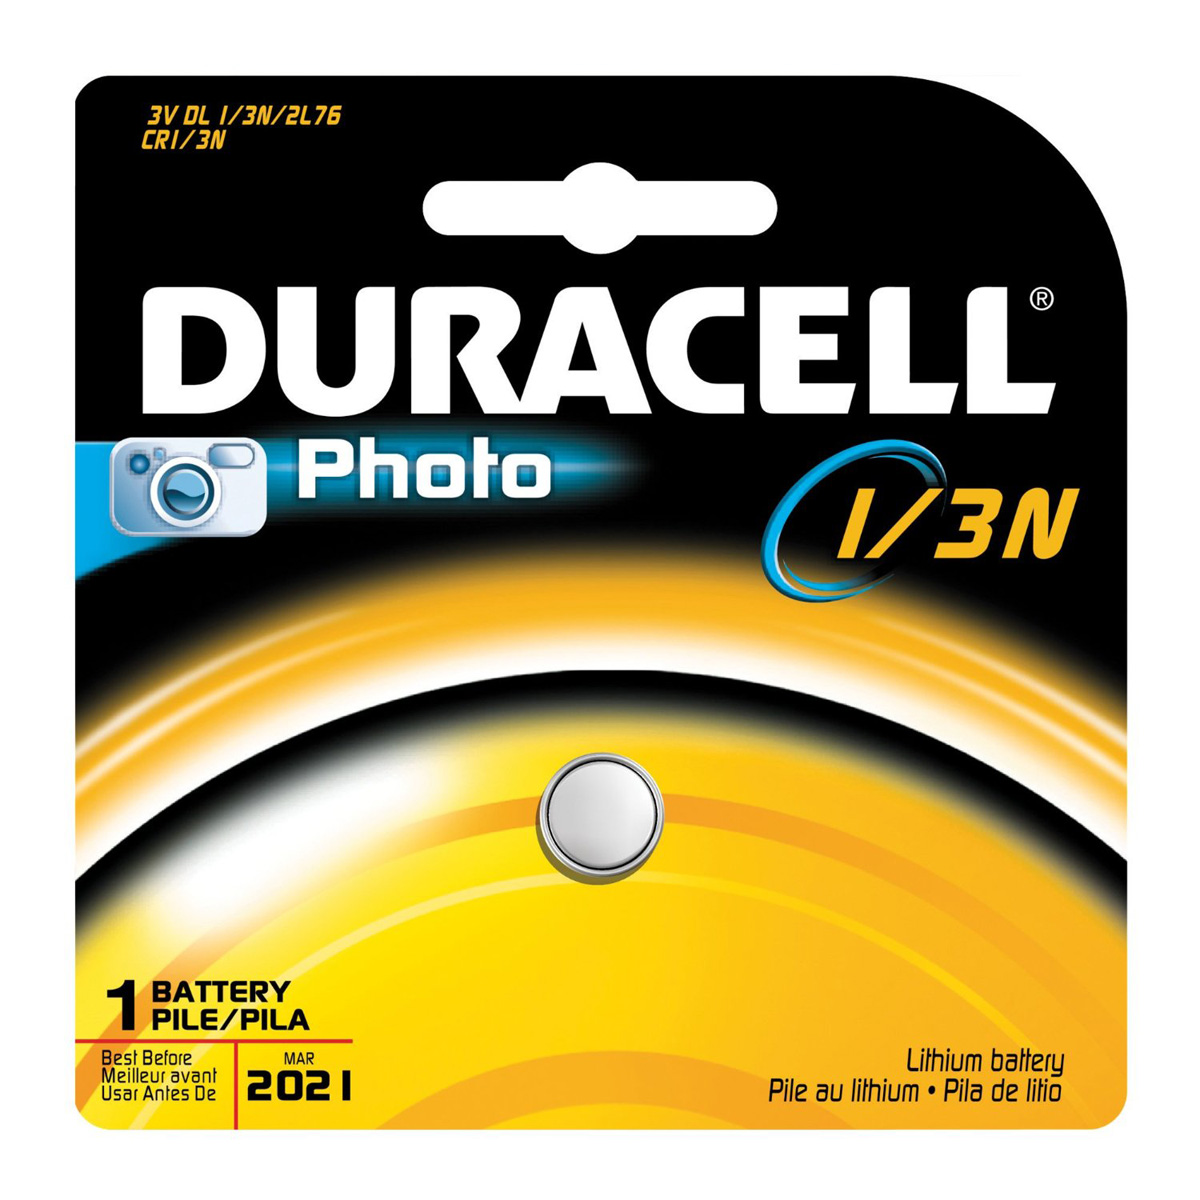 Image of Duracell 1/3NB Lithium Button Battery